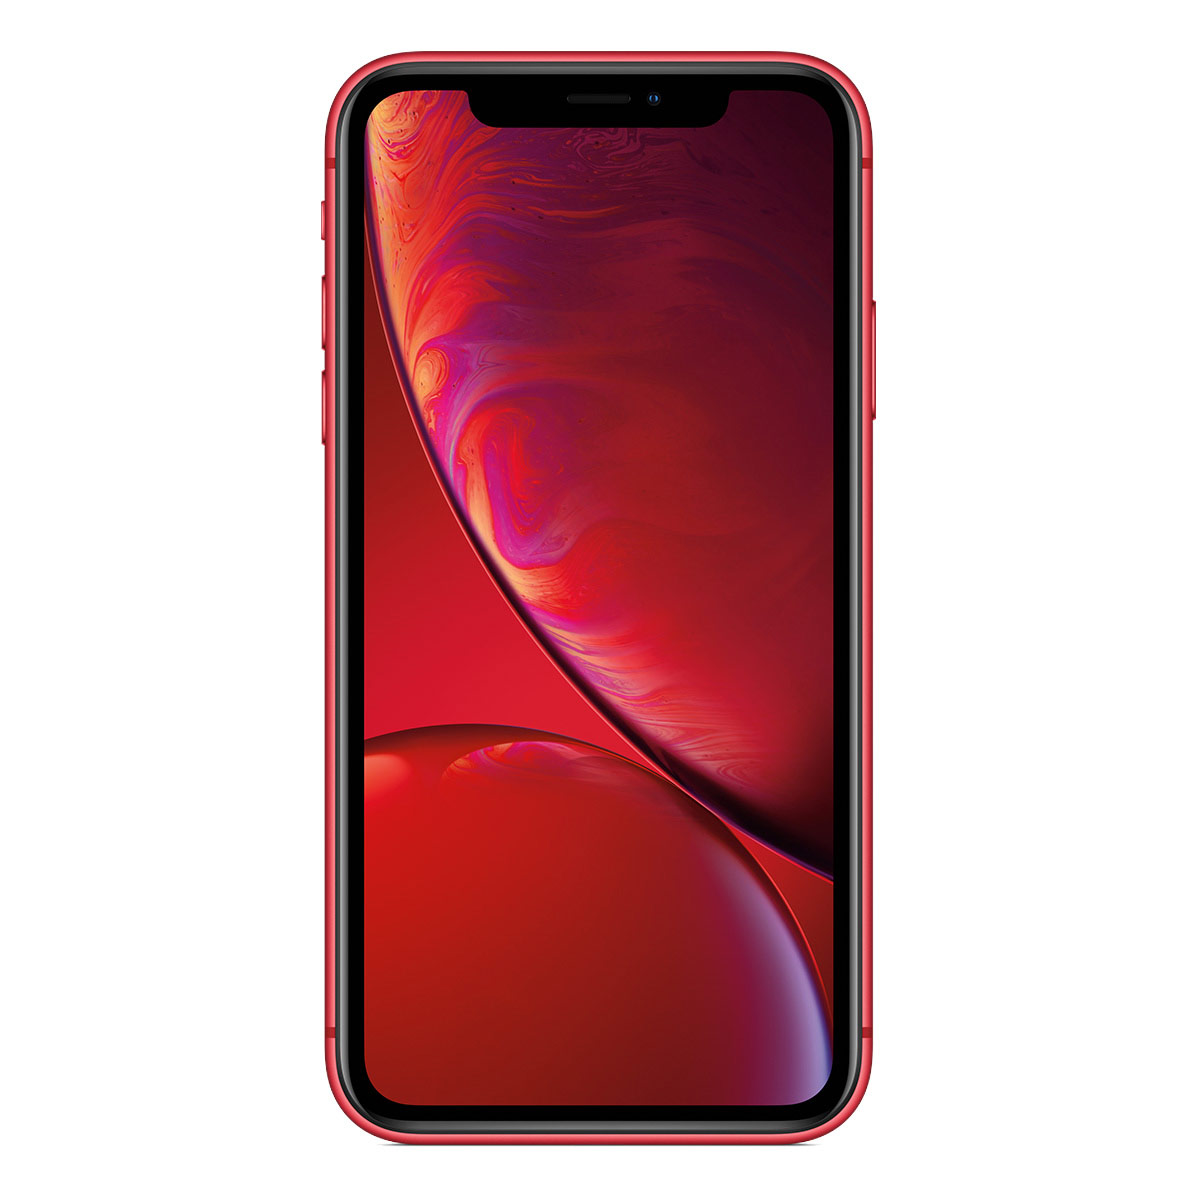 Apple iPhone XR 128GB (PRODUCT)Red - Unlocked